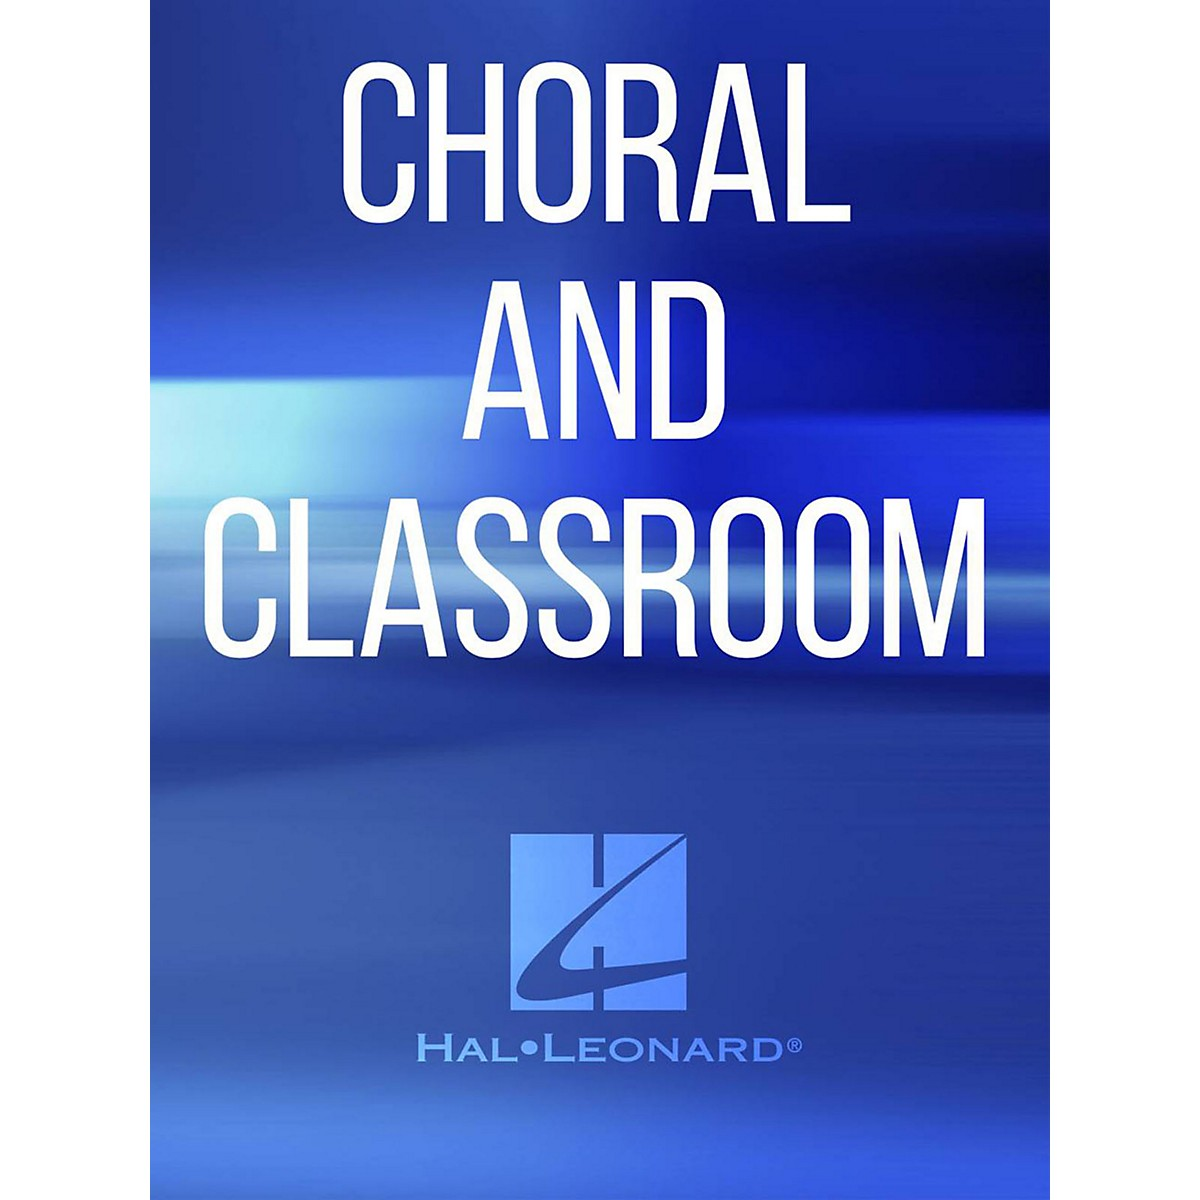 Hal Leonard Sing on Sight - A Practical Sight-Singing Course (Volume 2) 2-Part or 3-Part Mixed